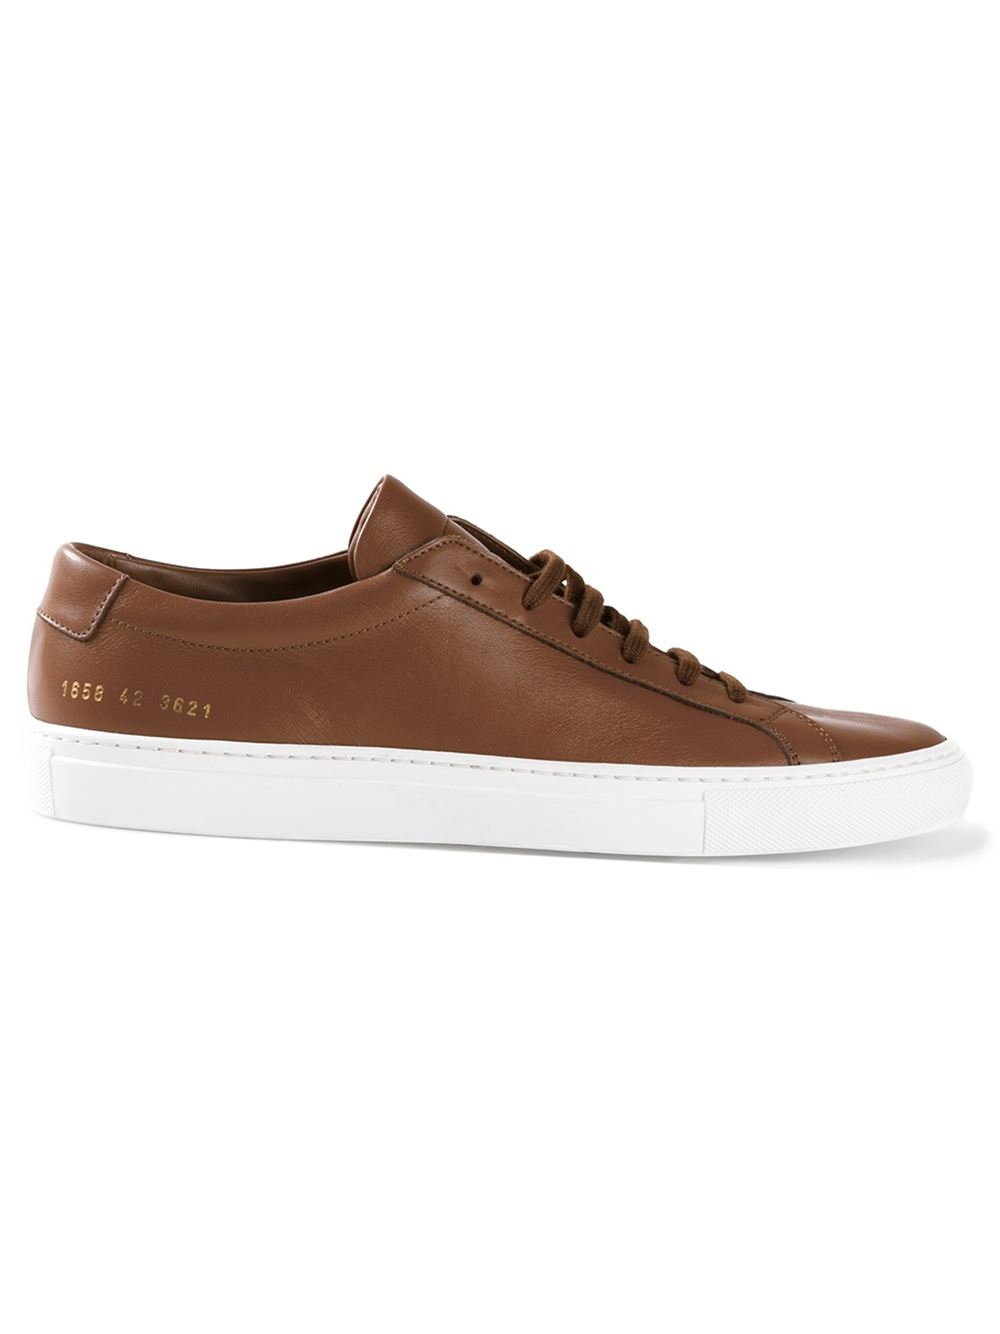 Common Projects Original Achilles Low Trainers in Brown for Men